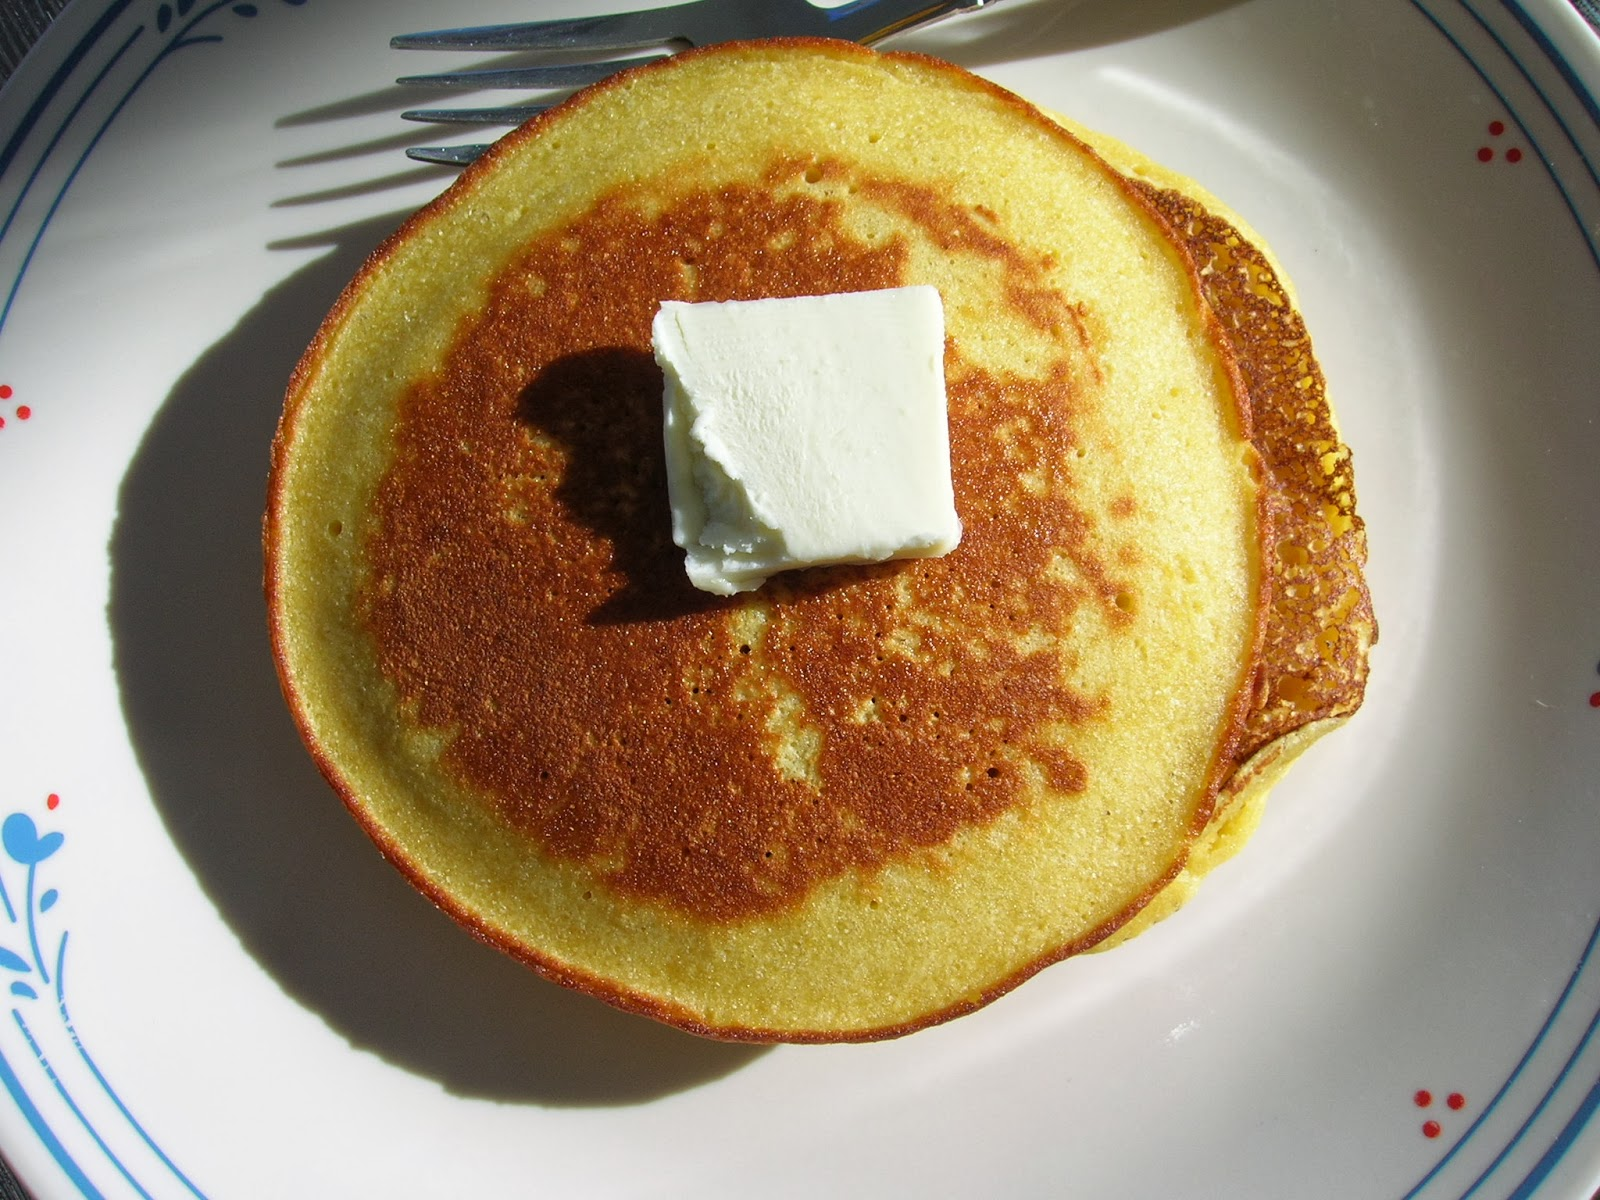 Wonderful fluffy lower carb, gluten free pancakes made with bean flour